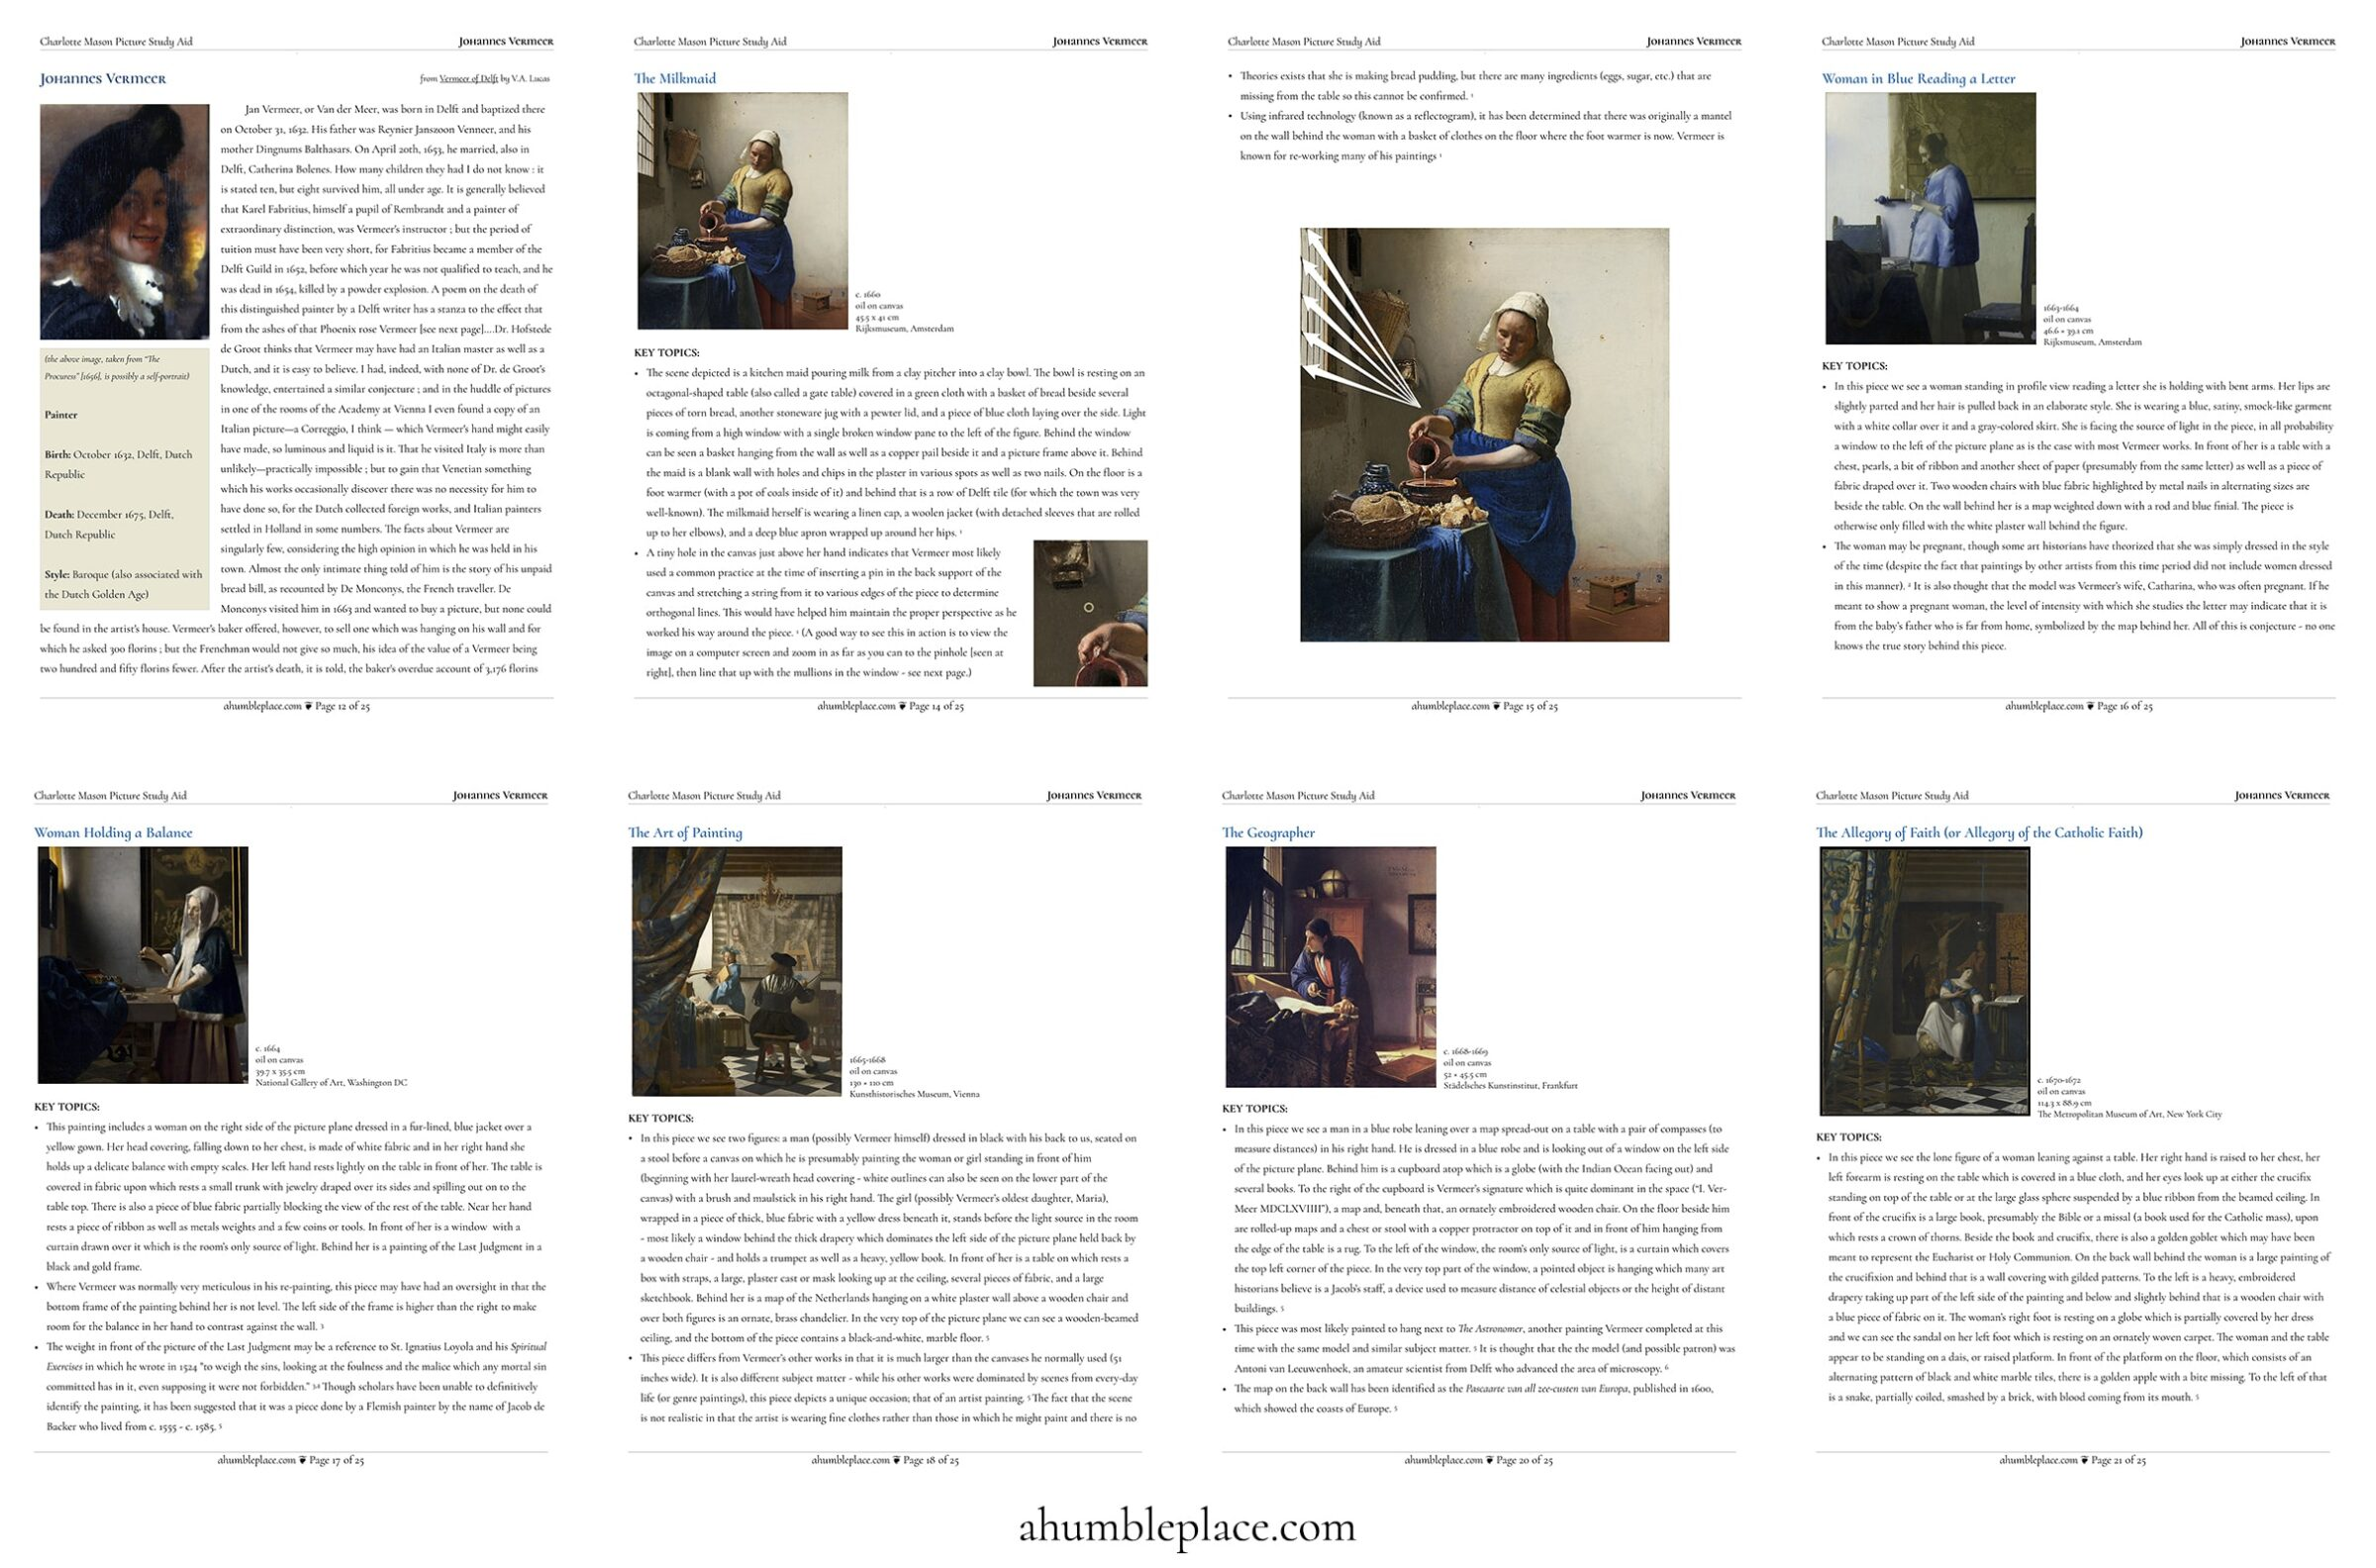 Johannes Vermeer: a (FREE!) Charlotte Mason Picture Study Aid - ahumbleplace.com